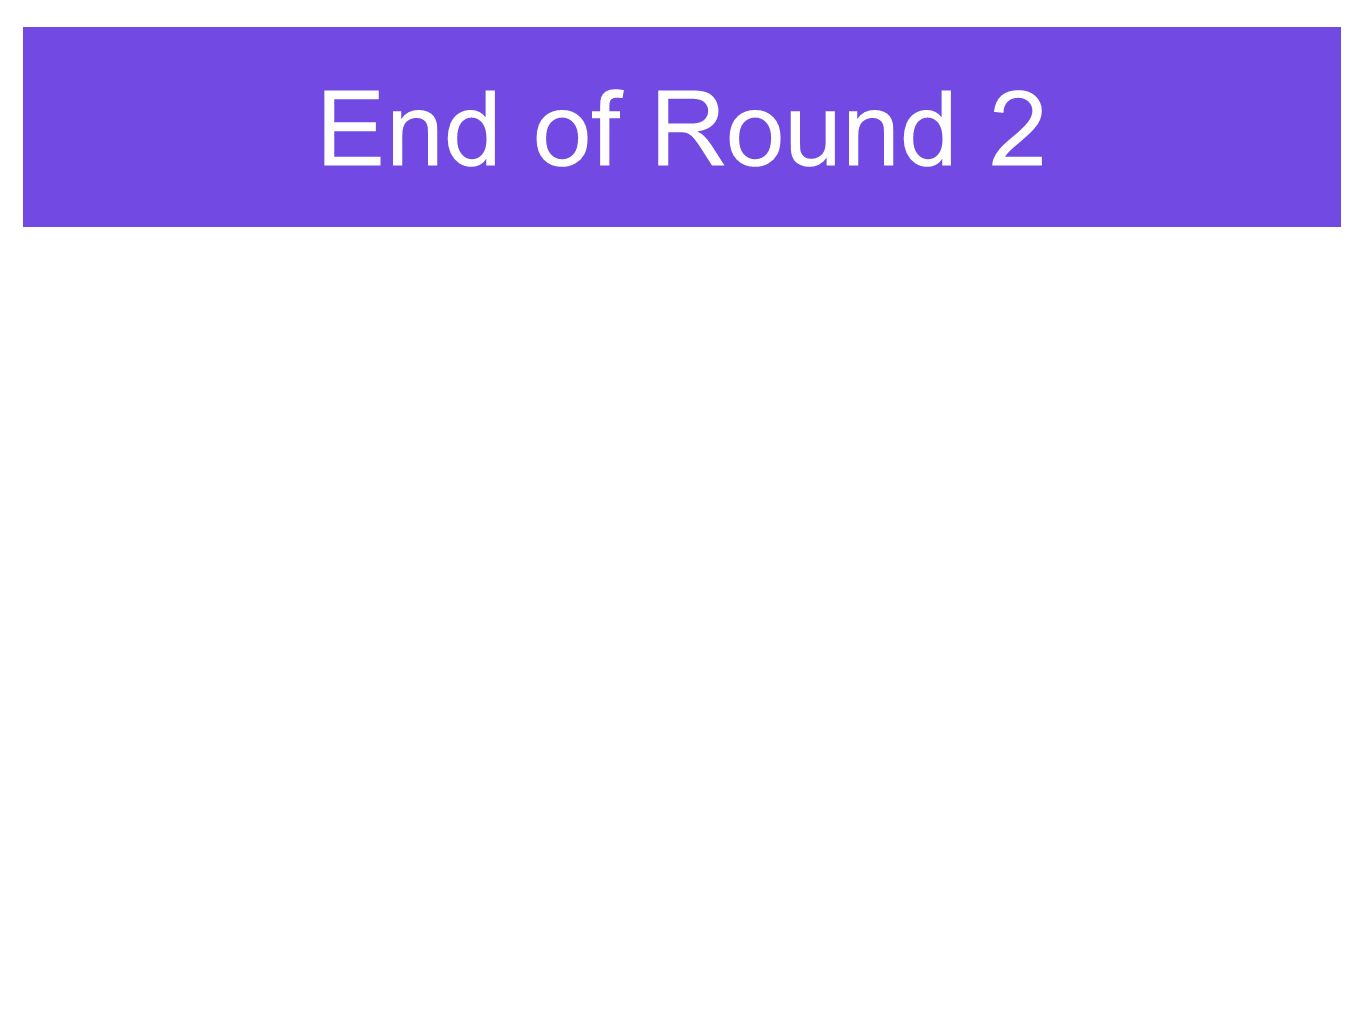 End of Round 2